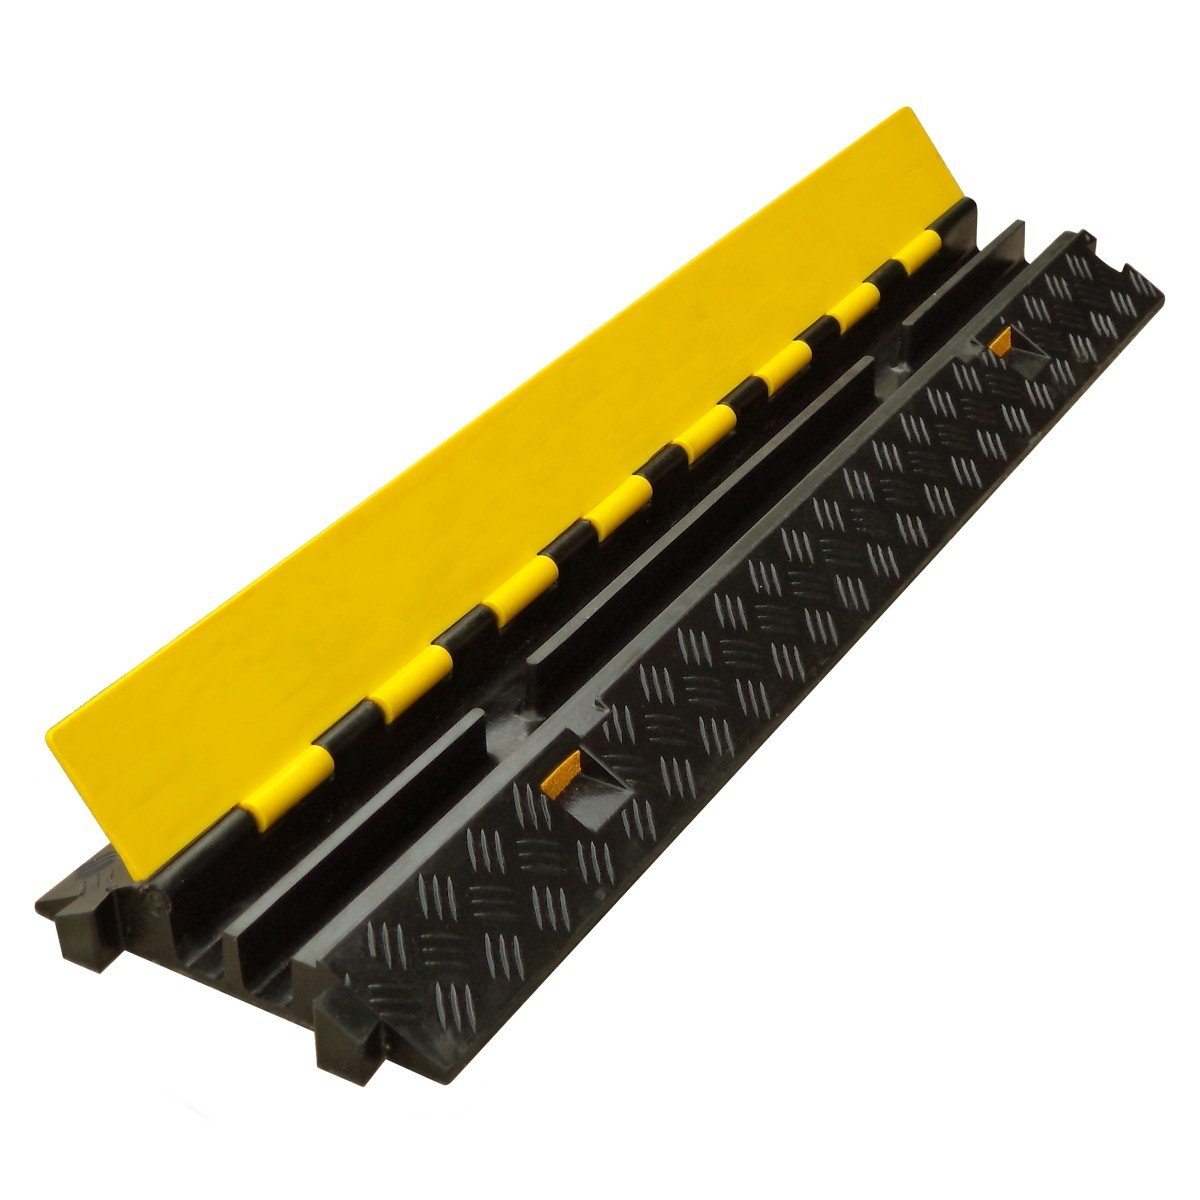 SnS Safety LTD DP-2x1 Dual Channel Modular Rubber Protector Ramp with Hinged Lid, for 1.14'' Diameter Conduits, Dimensions: 39.4'' L x 9.8'' W x 1.8'' H (Pack of 1)